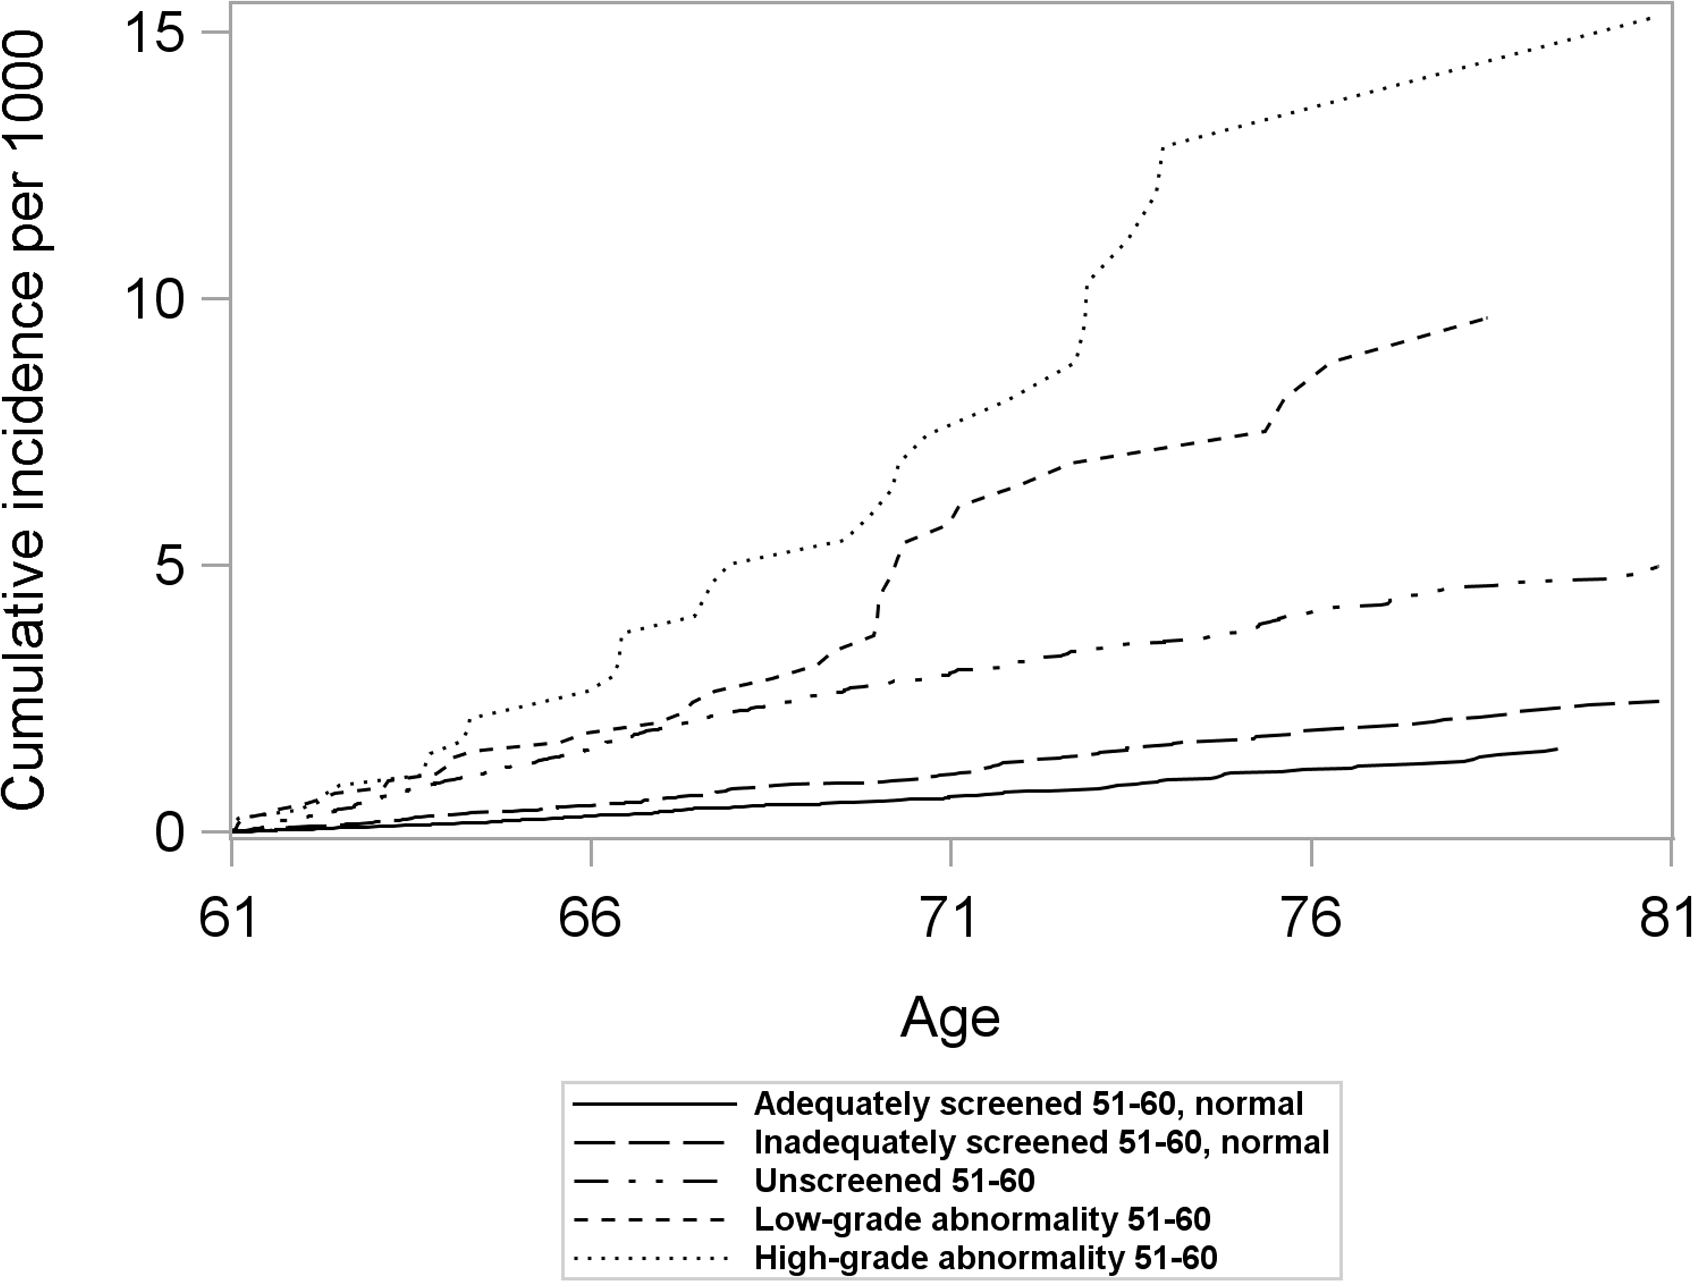 Cumulative incidence of cervical cancer from age 61 to 80 by screening history at age 51–60 in women unscreened after age 60, considering death and total hysterectomy as competing events.